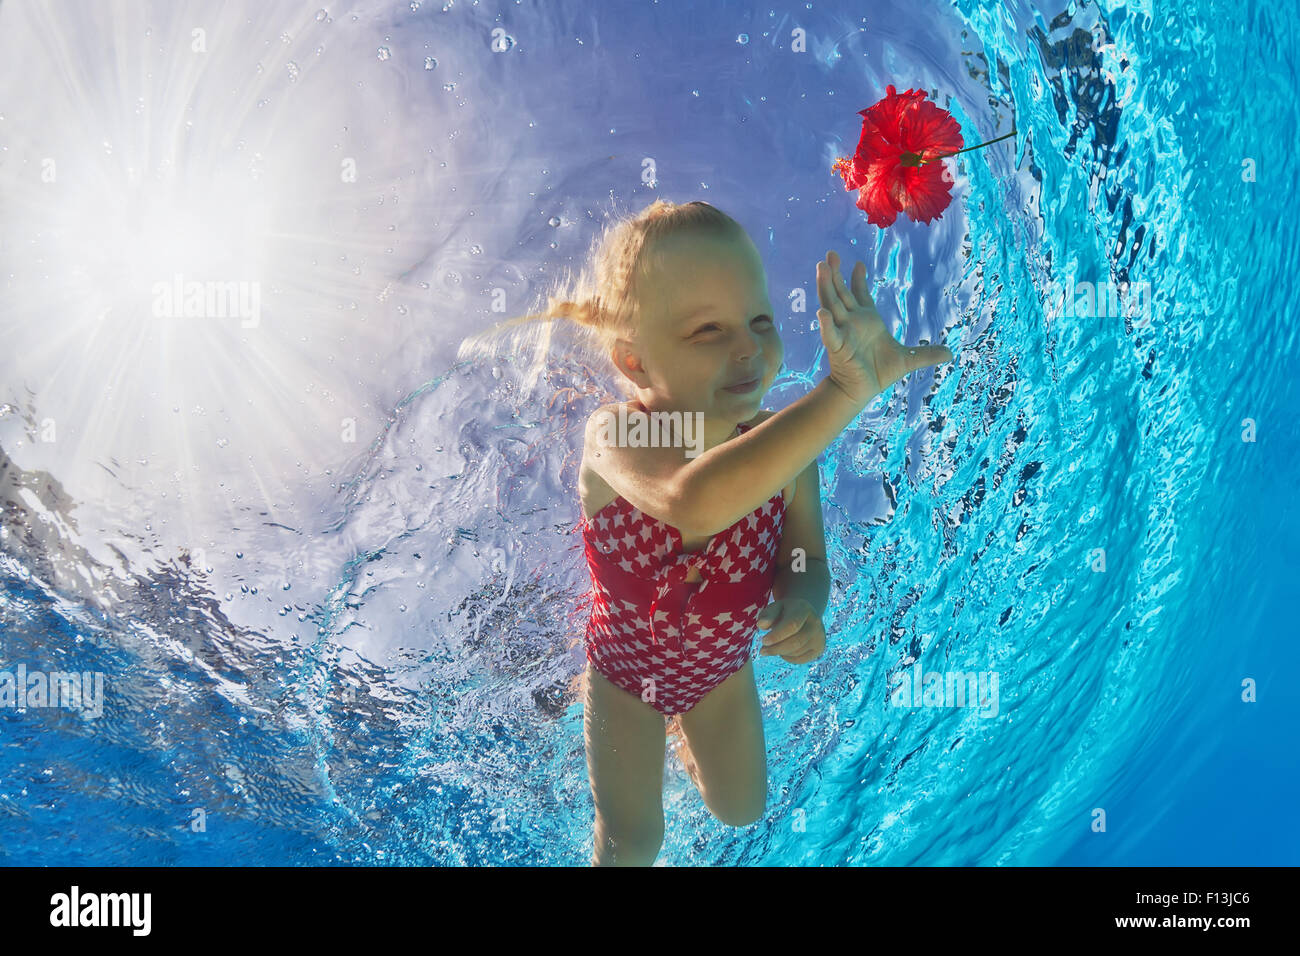 Happy little baby with smile and open eyes diving in swimming pool with clear blue water for a bright red flower. Stock Photo